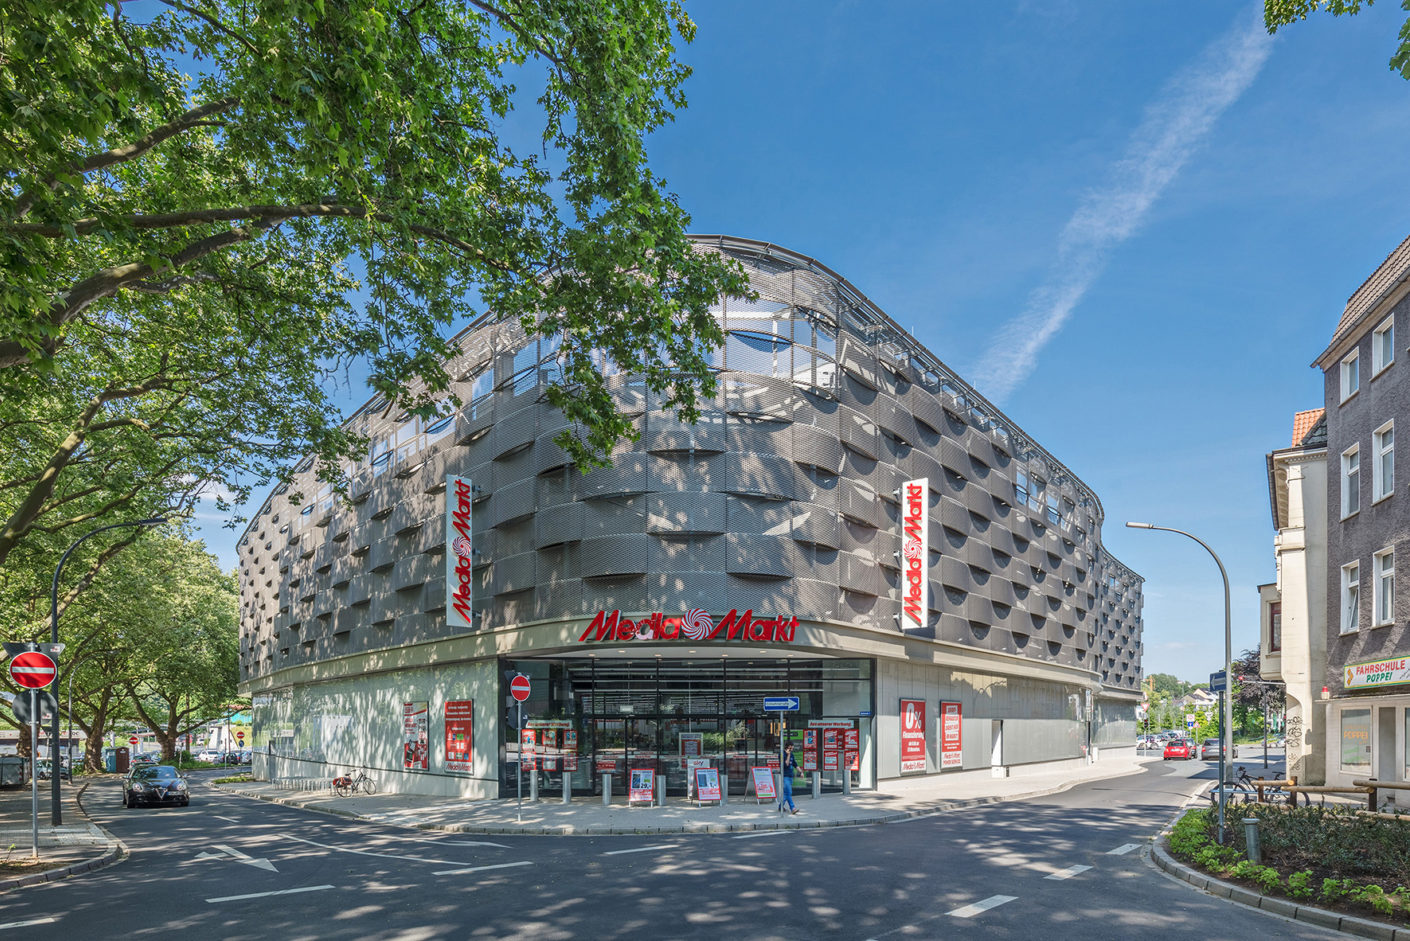 Photo gallery: Electronics market in Dortmund by Nattler Architects